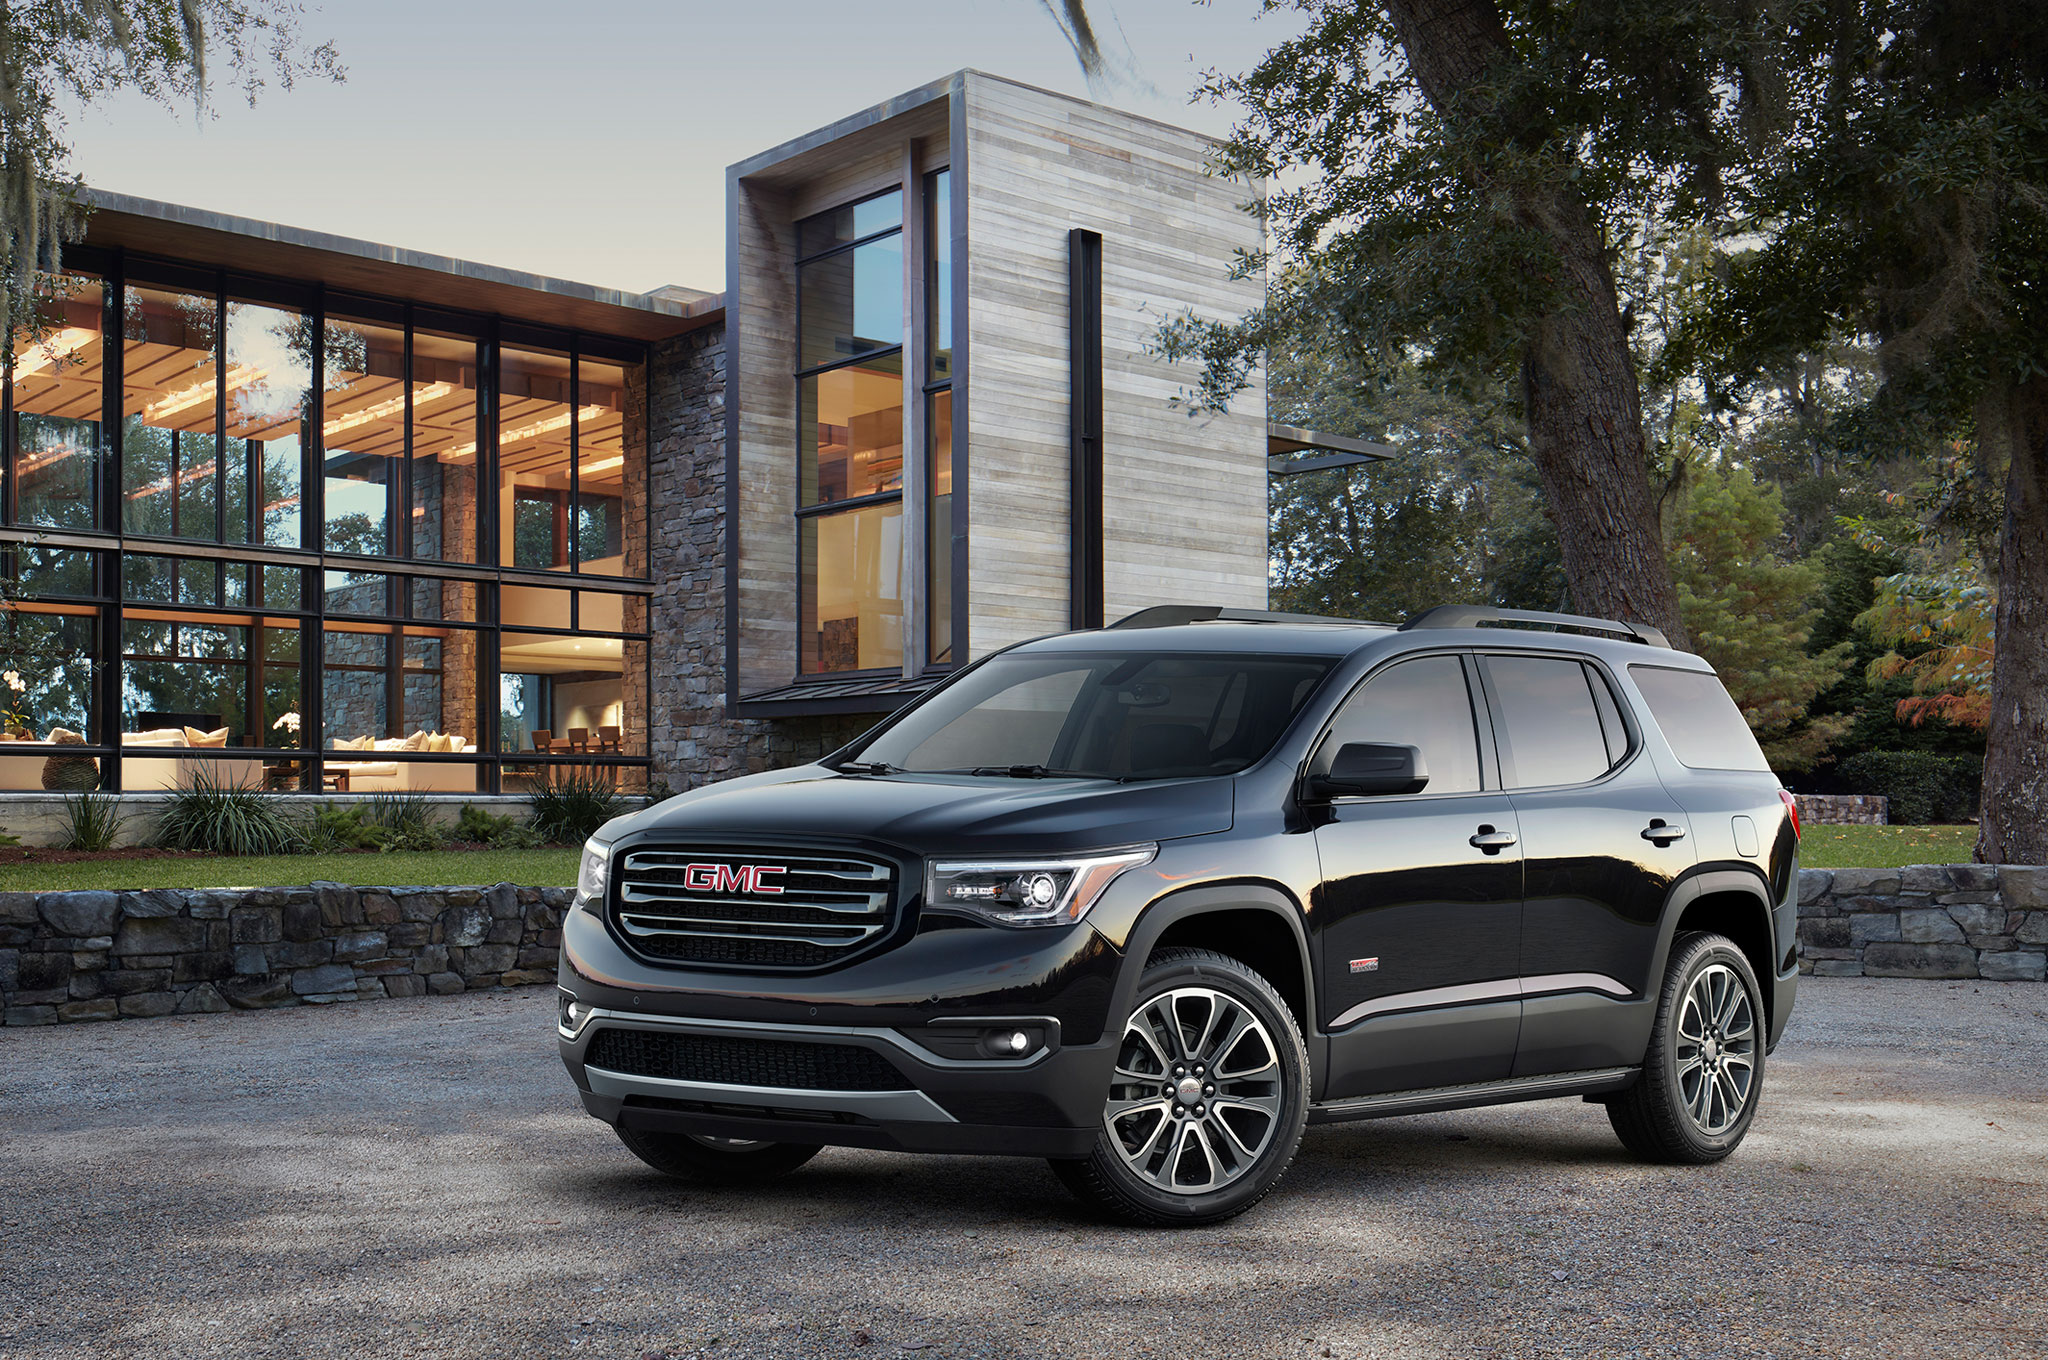 2017 Gmc Acadia Towing Capacity >> 2017 Gmc Acadia First Look Large Crossover Gets Smaller Lighter